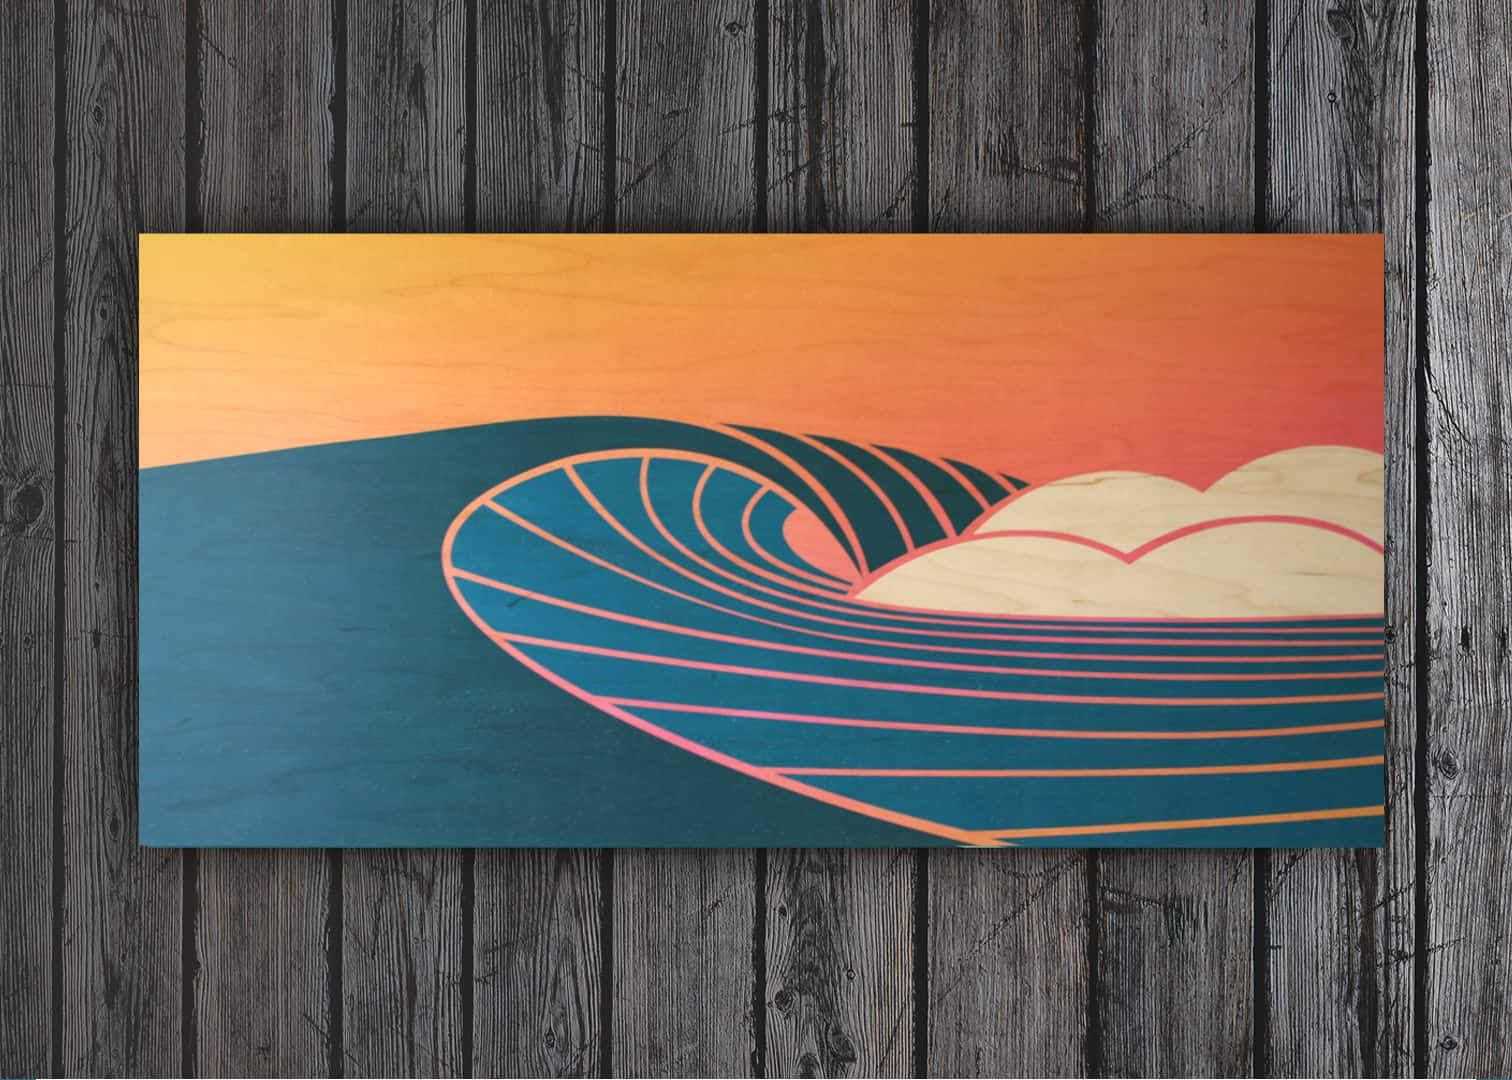 Wood Art, Surf Shop, Beach shop, online surf shop, beach gallery, surf gallery, Beach Bedroom Decor, surfboard Art, Beach Art